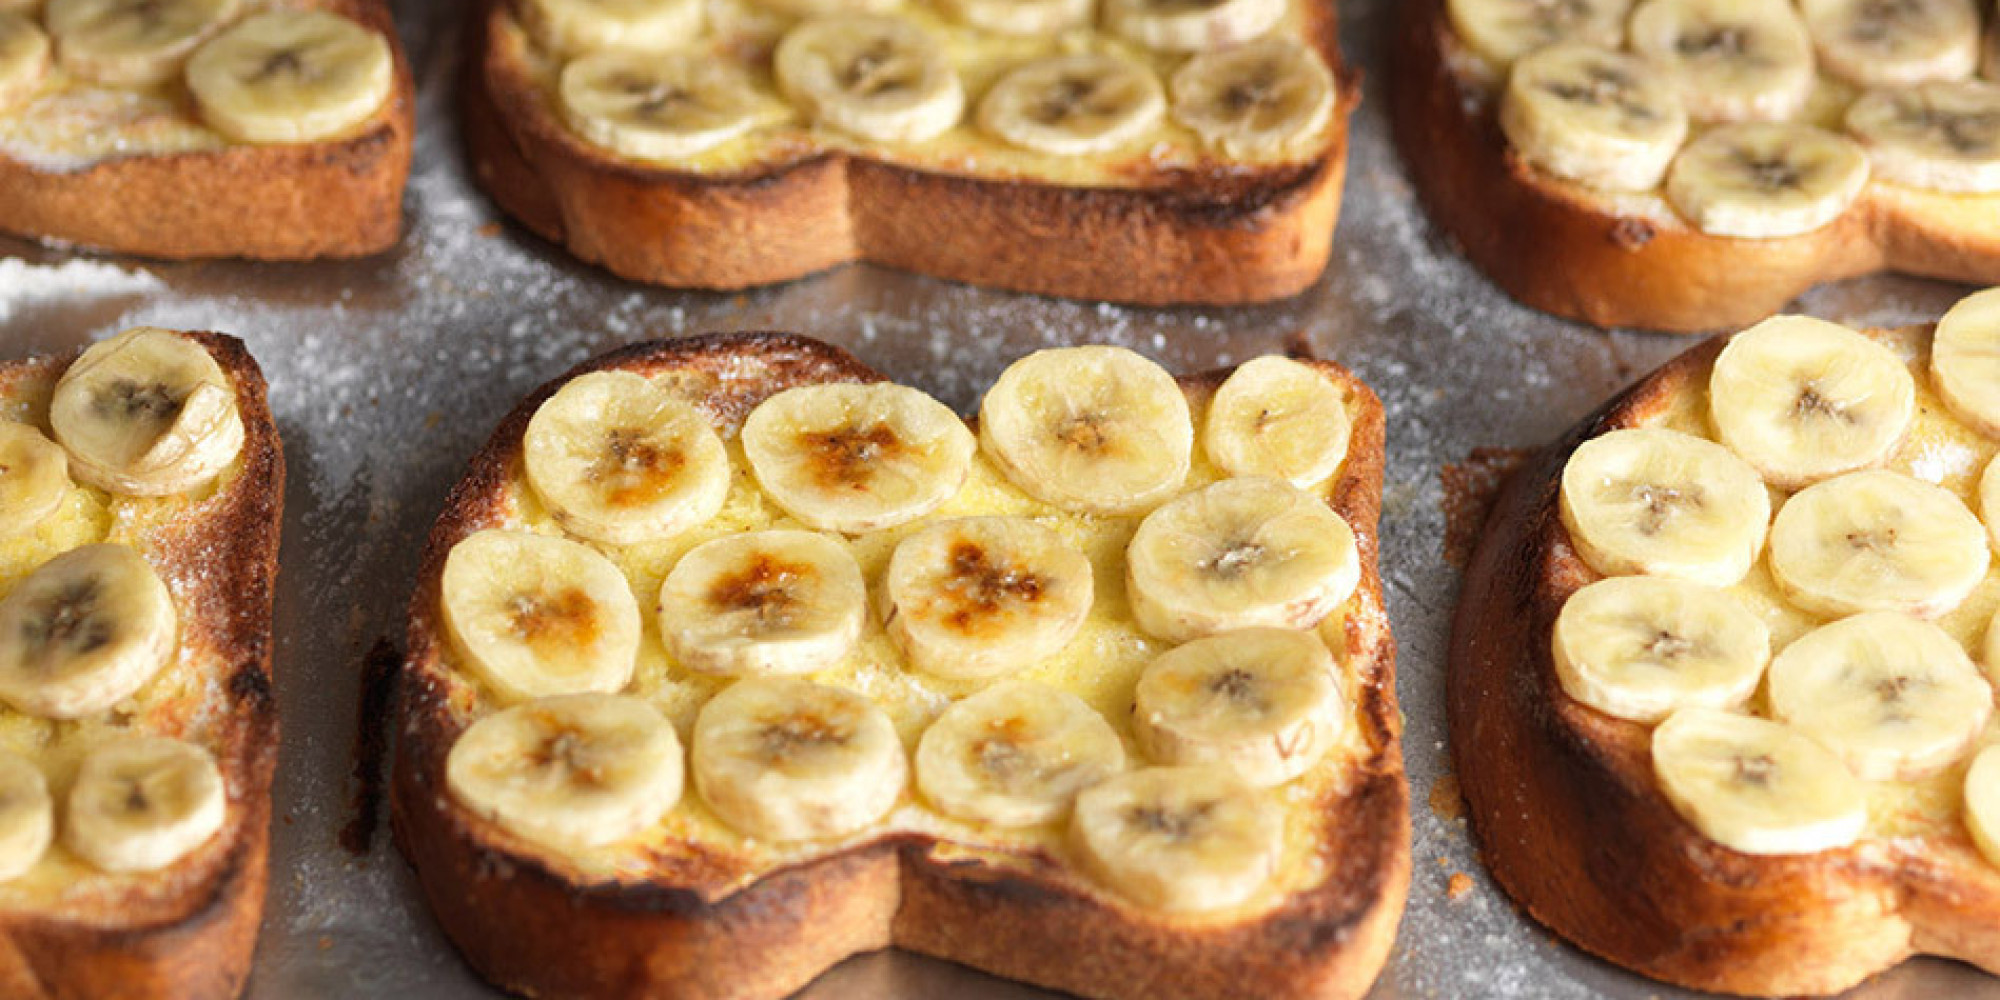 The Quickest Way To Make French Toast (and Other Breakfasts)  Huffpost